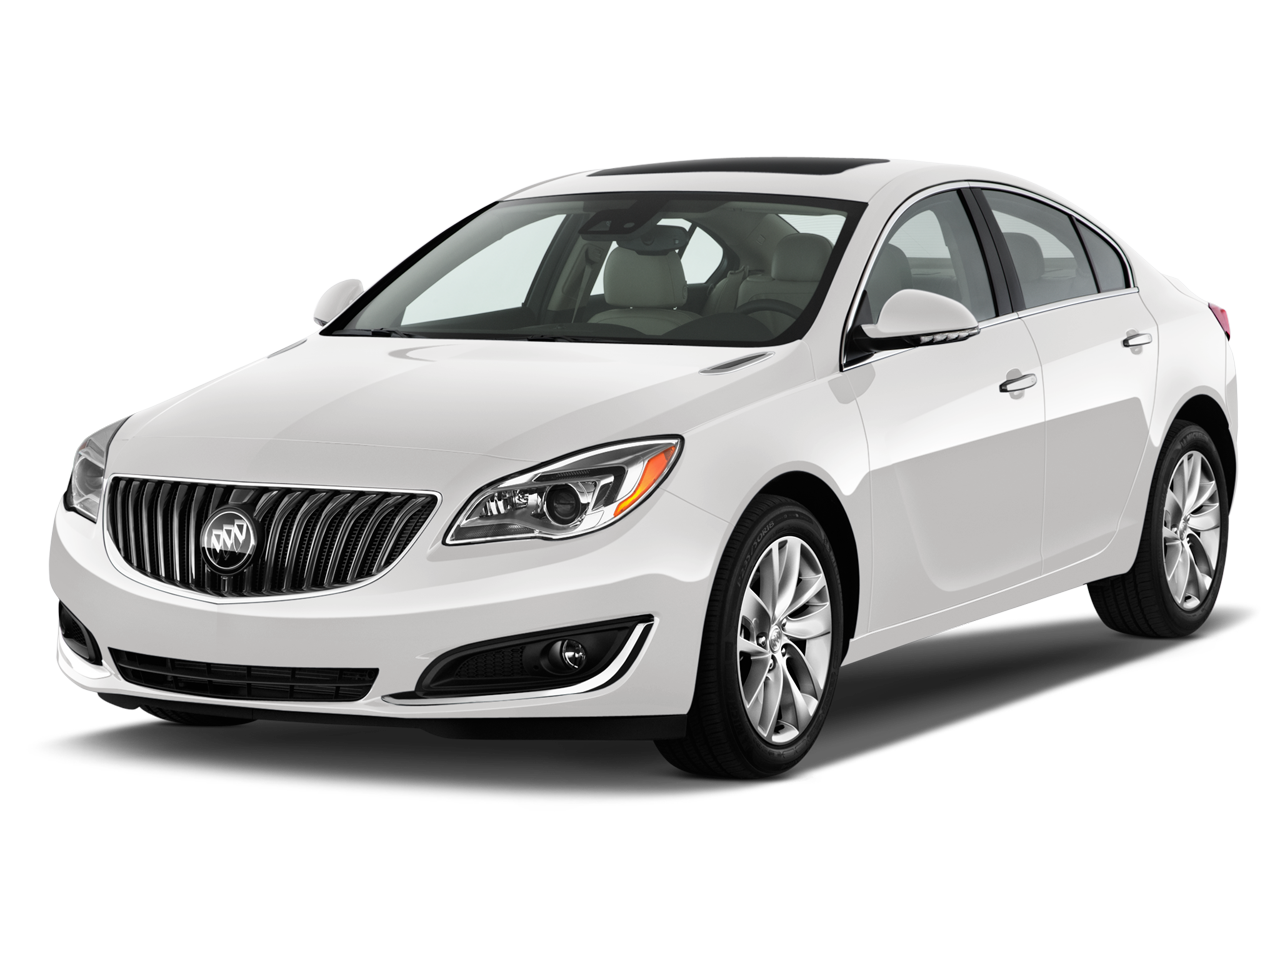 new 2017 buick regal base near pryor ok roberts chevrolet buick gmc. Black Bedroom Furniture Sets. Home Design Ideas